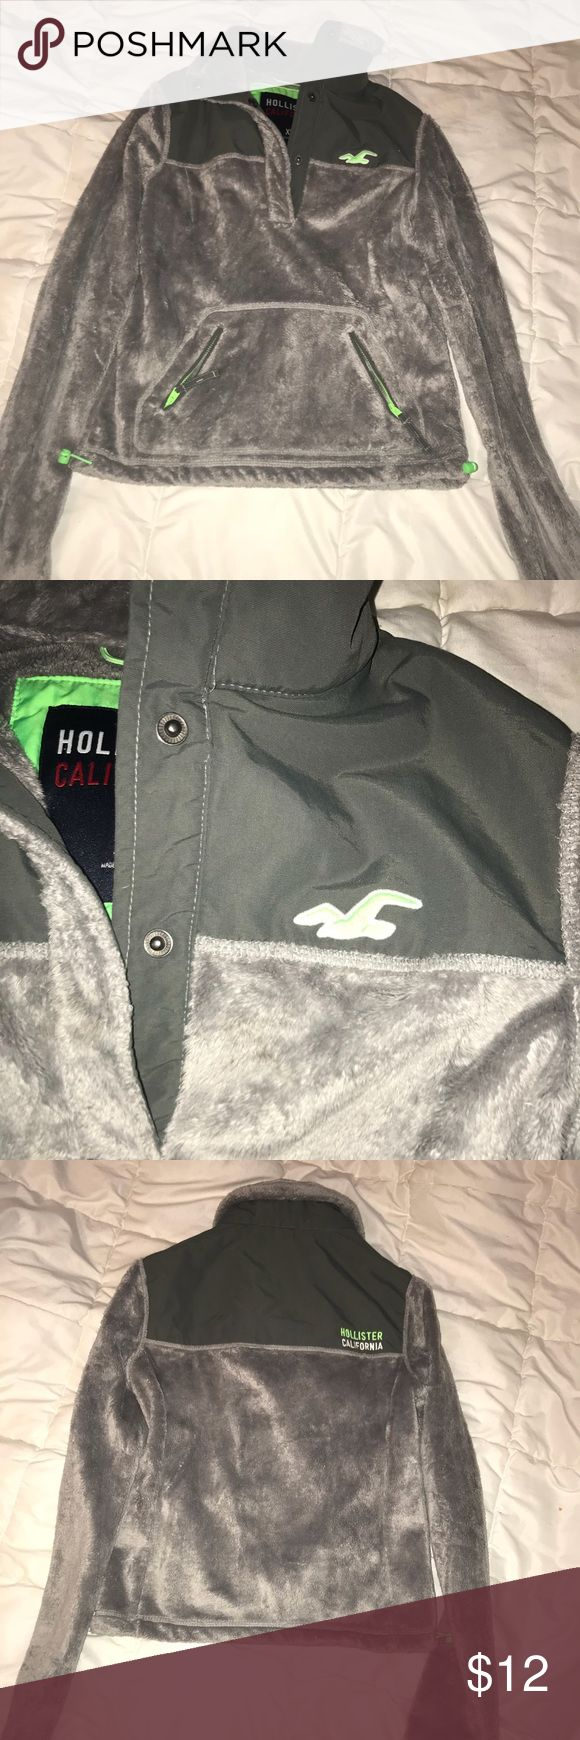 Grey Pullover Grey pullover with Lime green accents. (on inside, on zipper, on tightening strings) Worn few times. Faux fur is soft. Pullover thick and warm. Half button down. Hollister Tops Sweatshirts & Hoodies